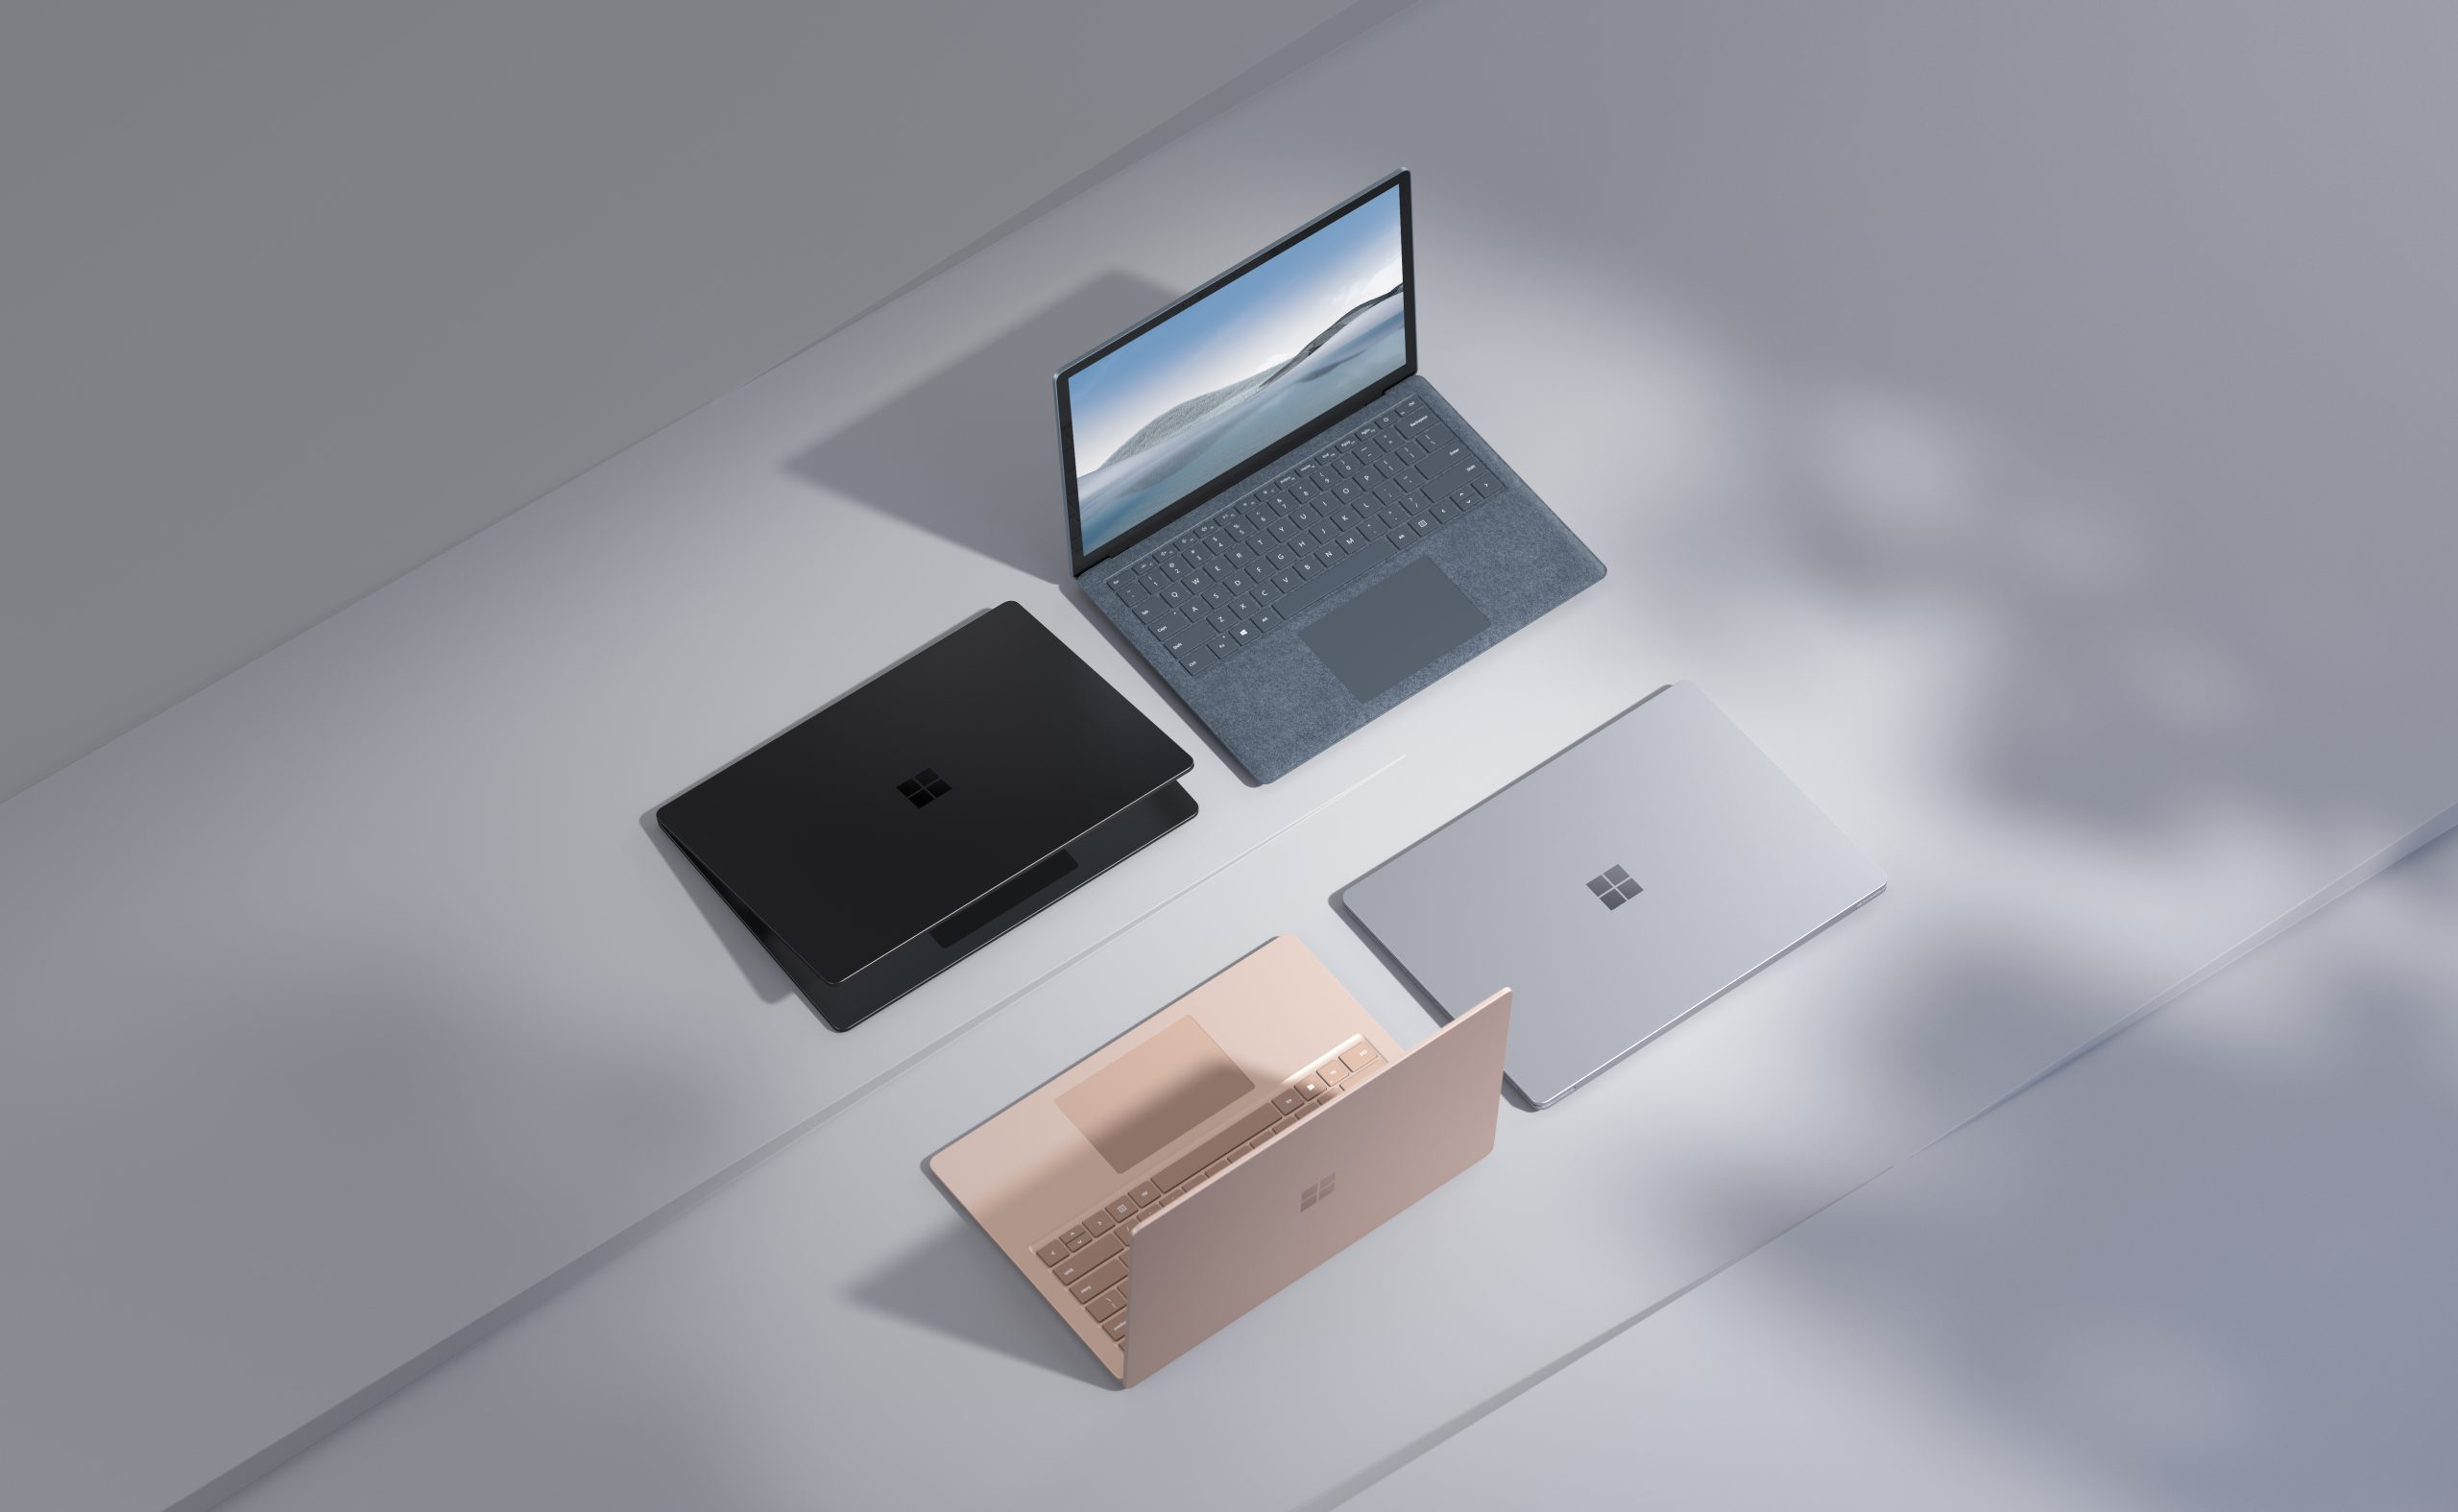 Microsoft Surface Laptop 4 – Pricing, Expected Specifications & Features